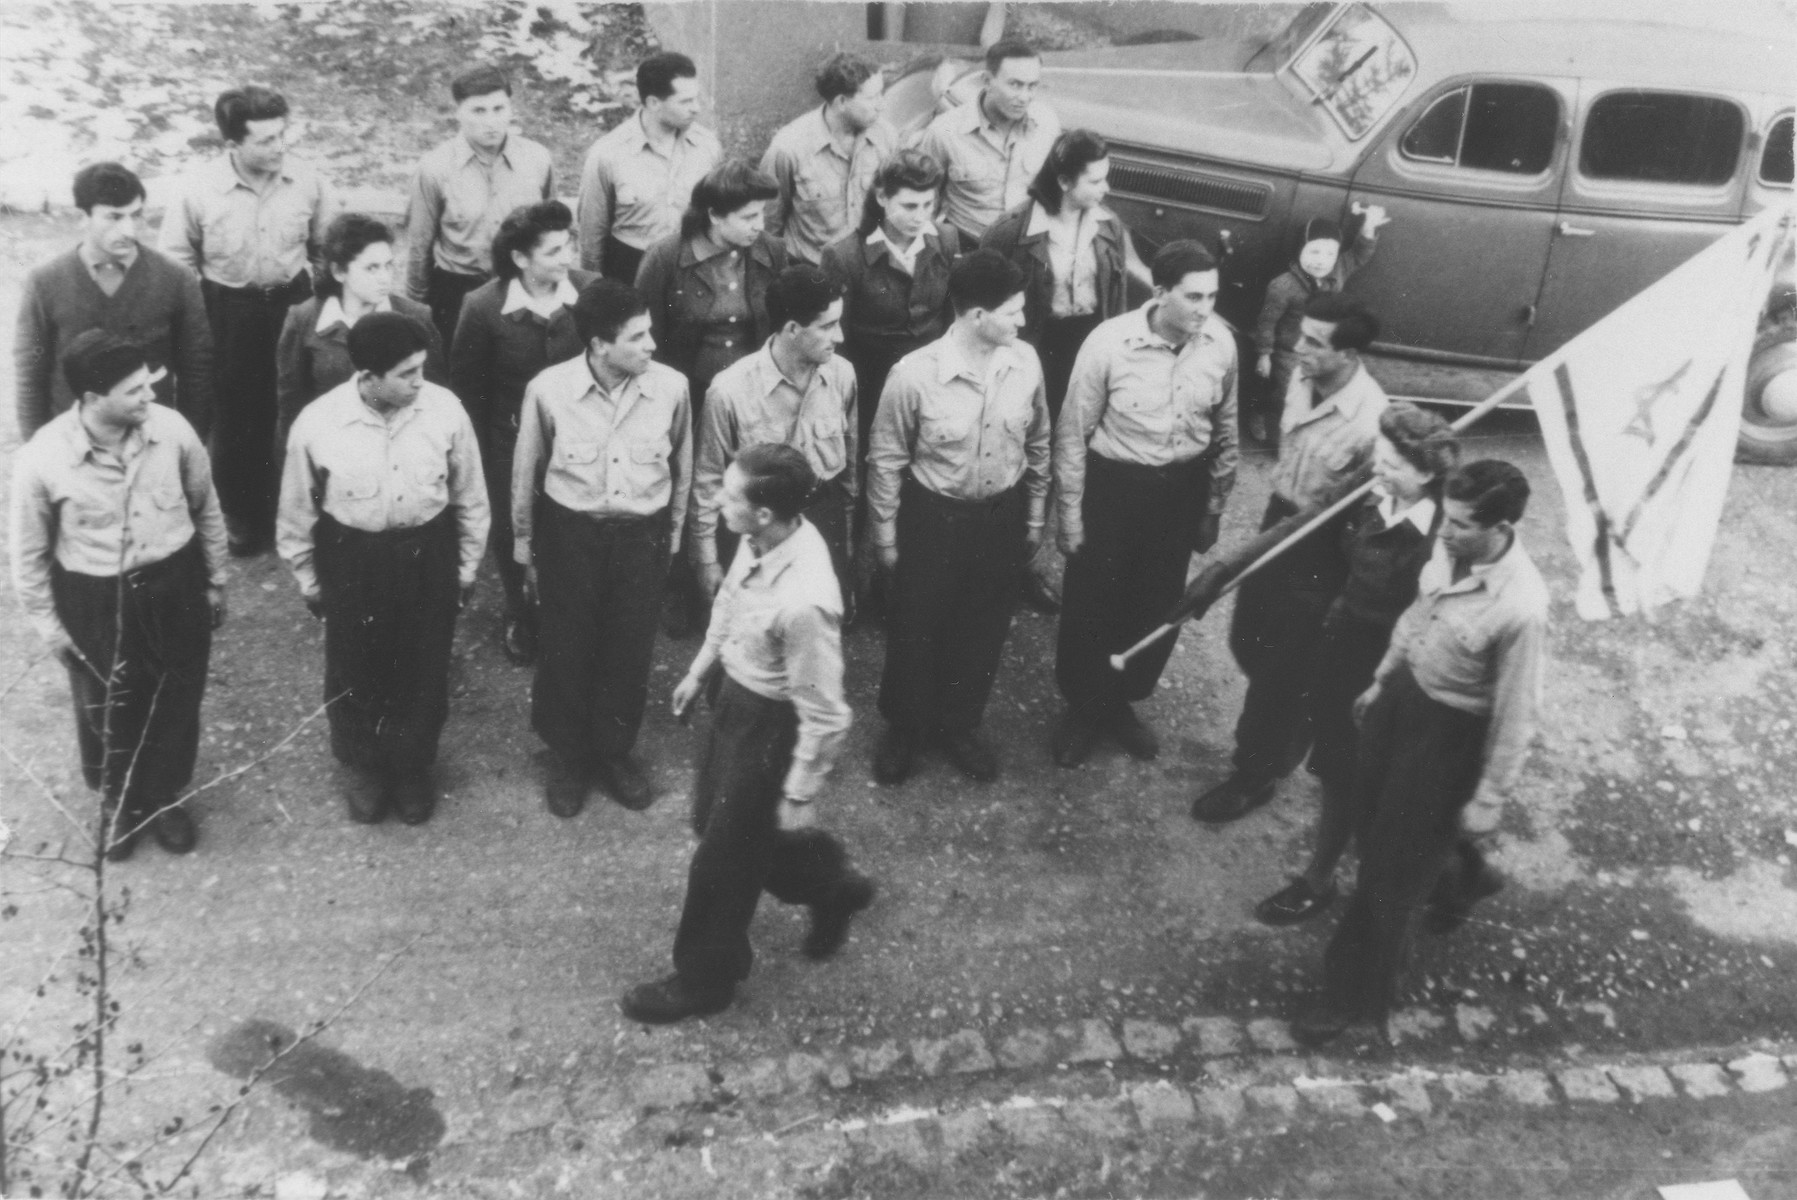 Members of the hachshara [Zionist collective] Kibbutz Hathiya stand in formation during a procession at the Foehrenwald displaced persons camp.